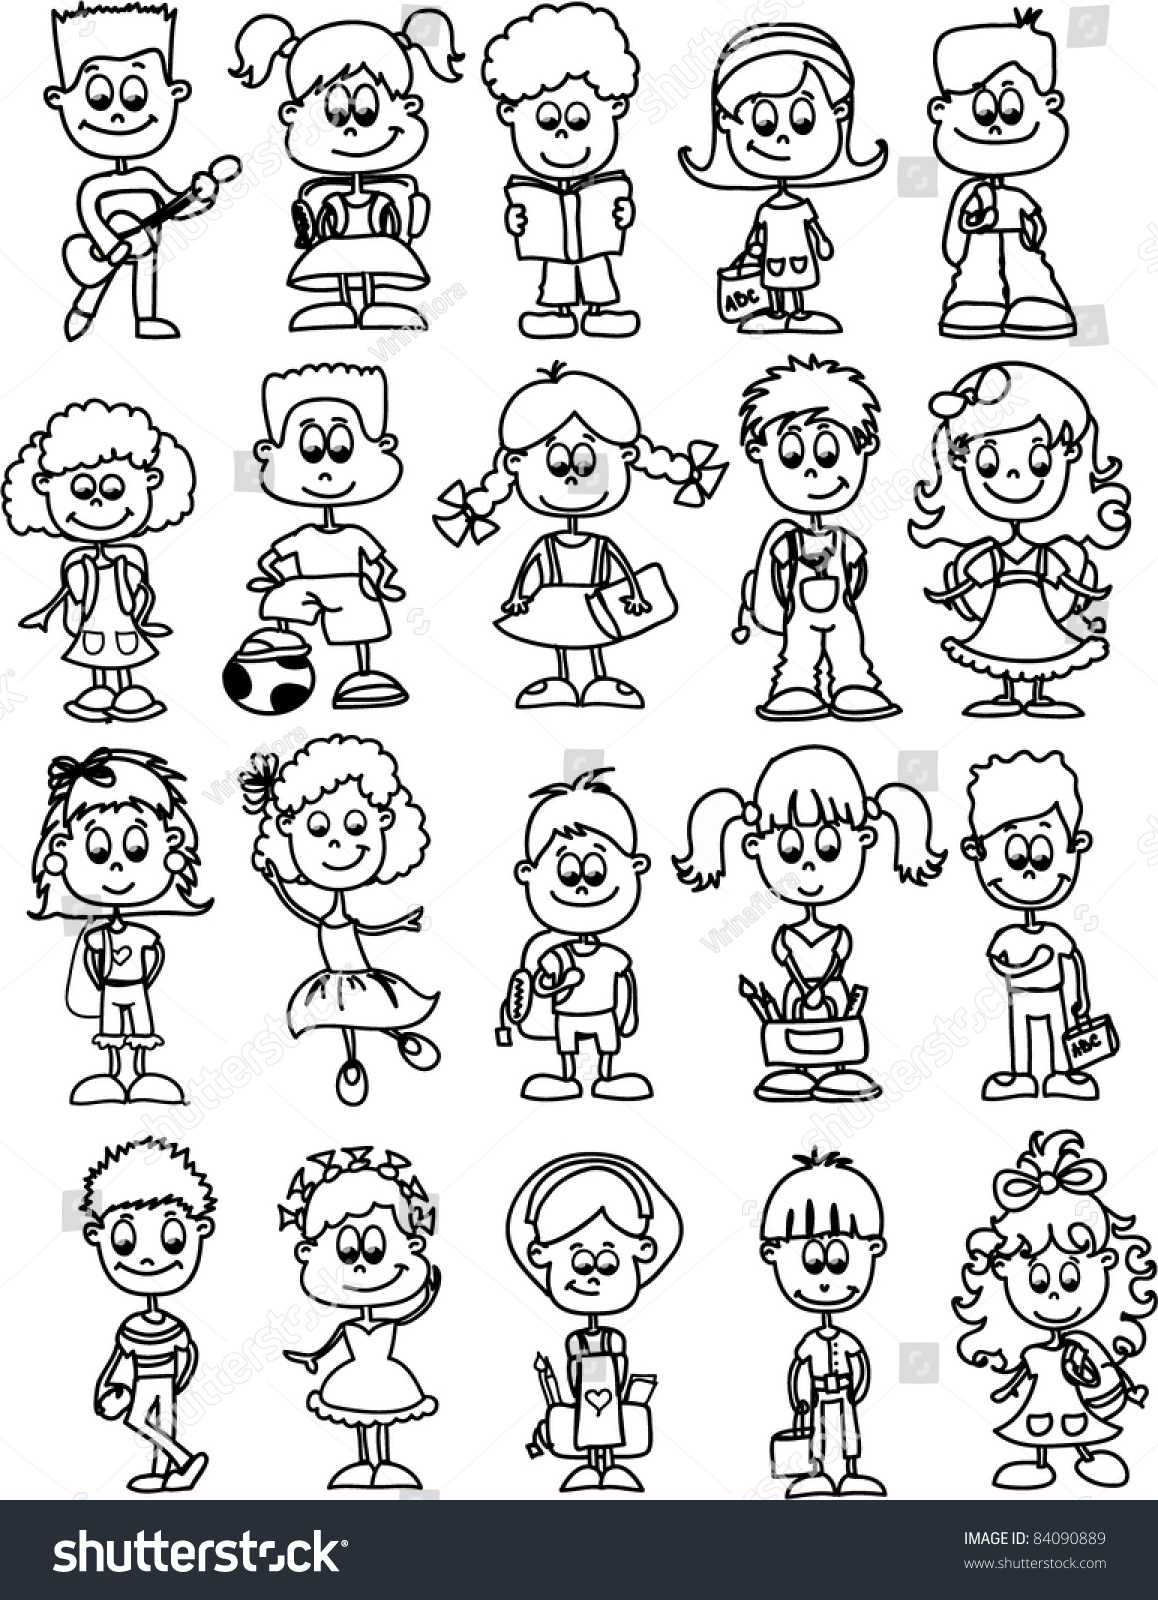 cartoon drawings of children students